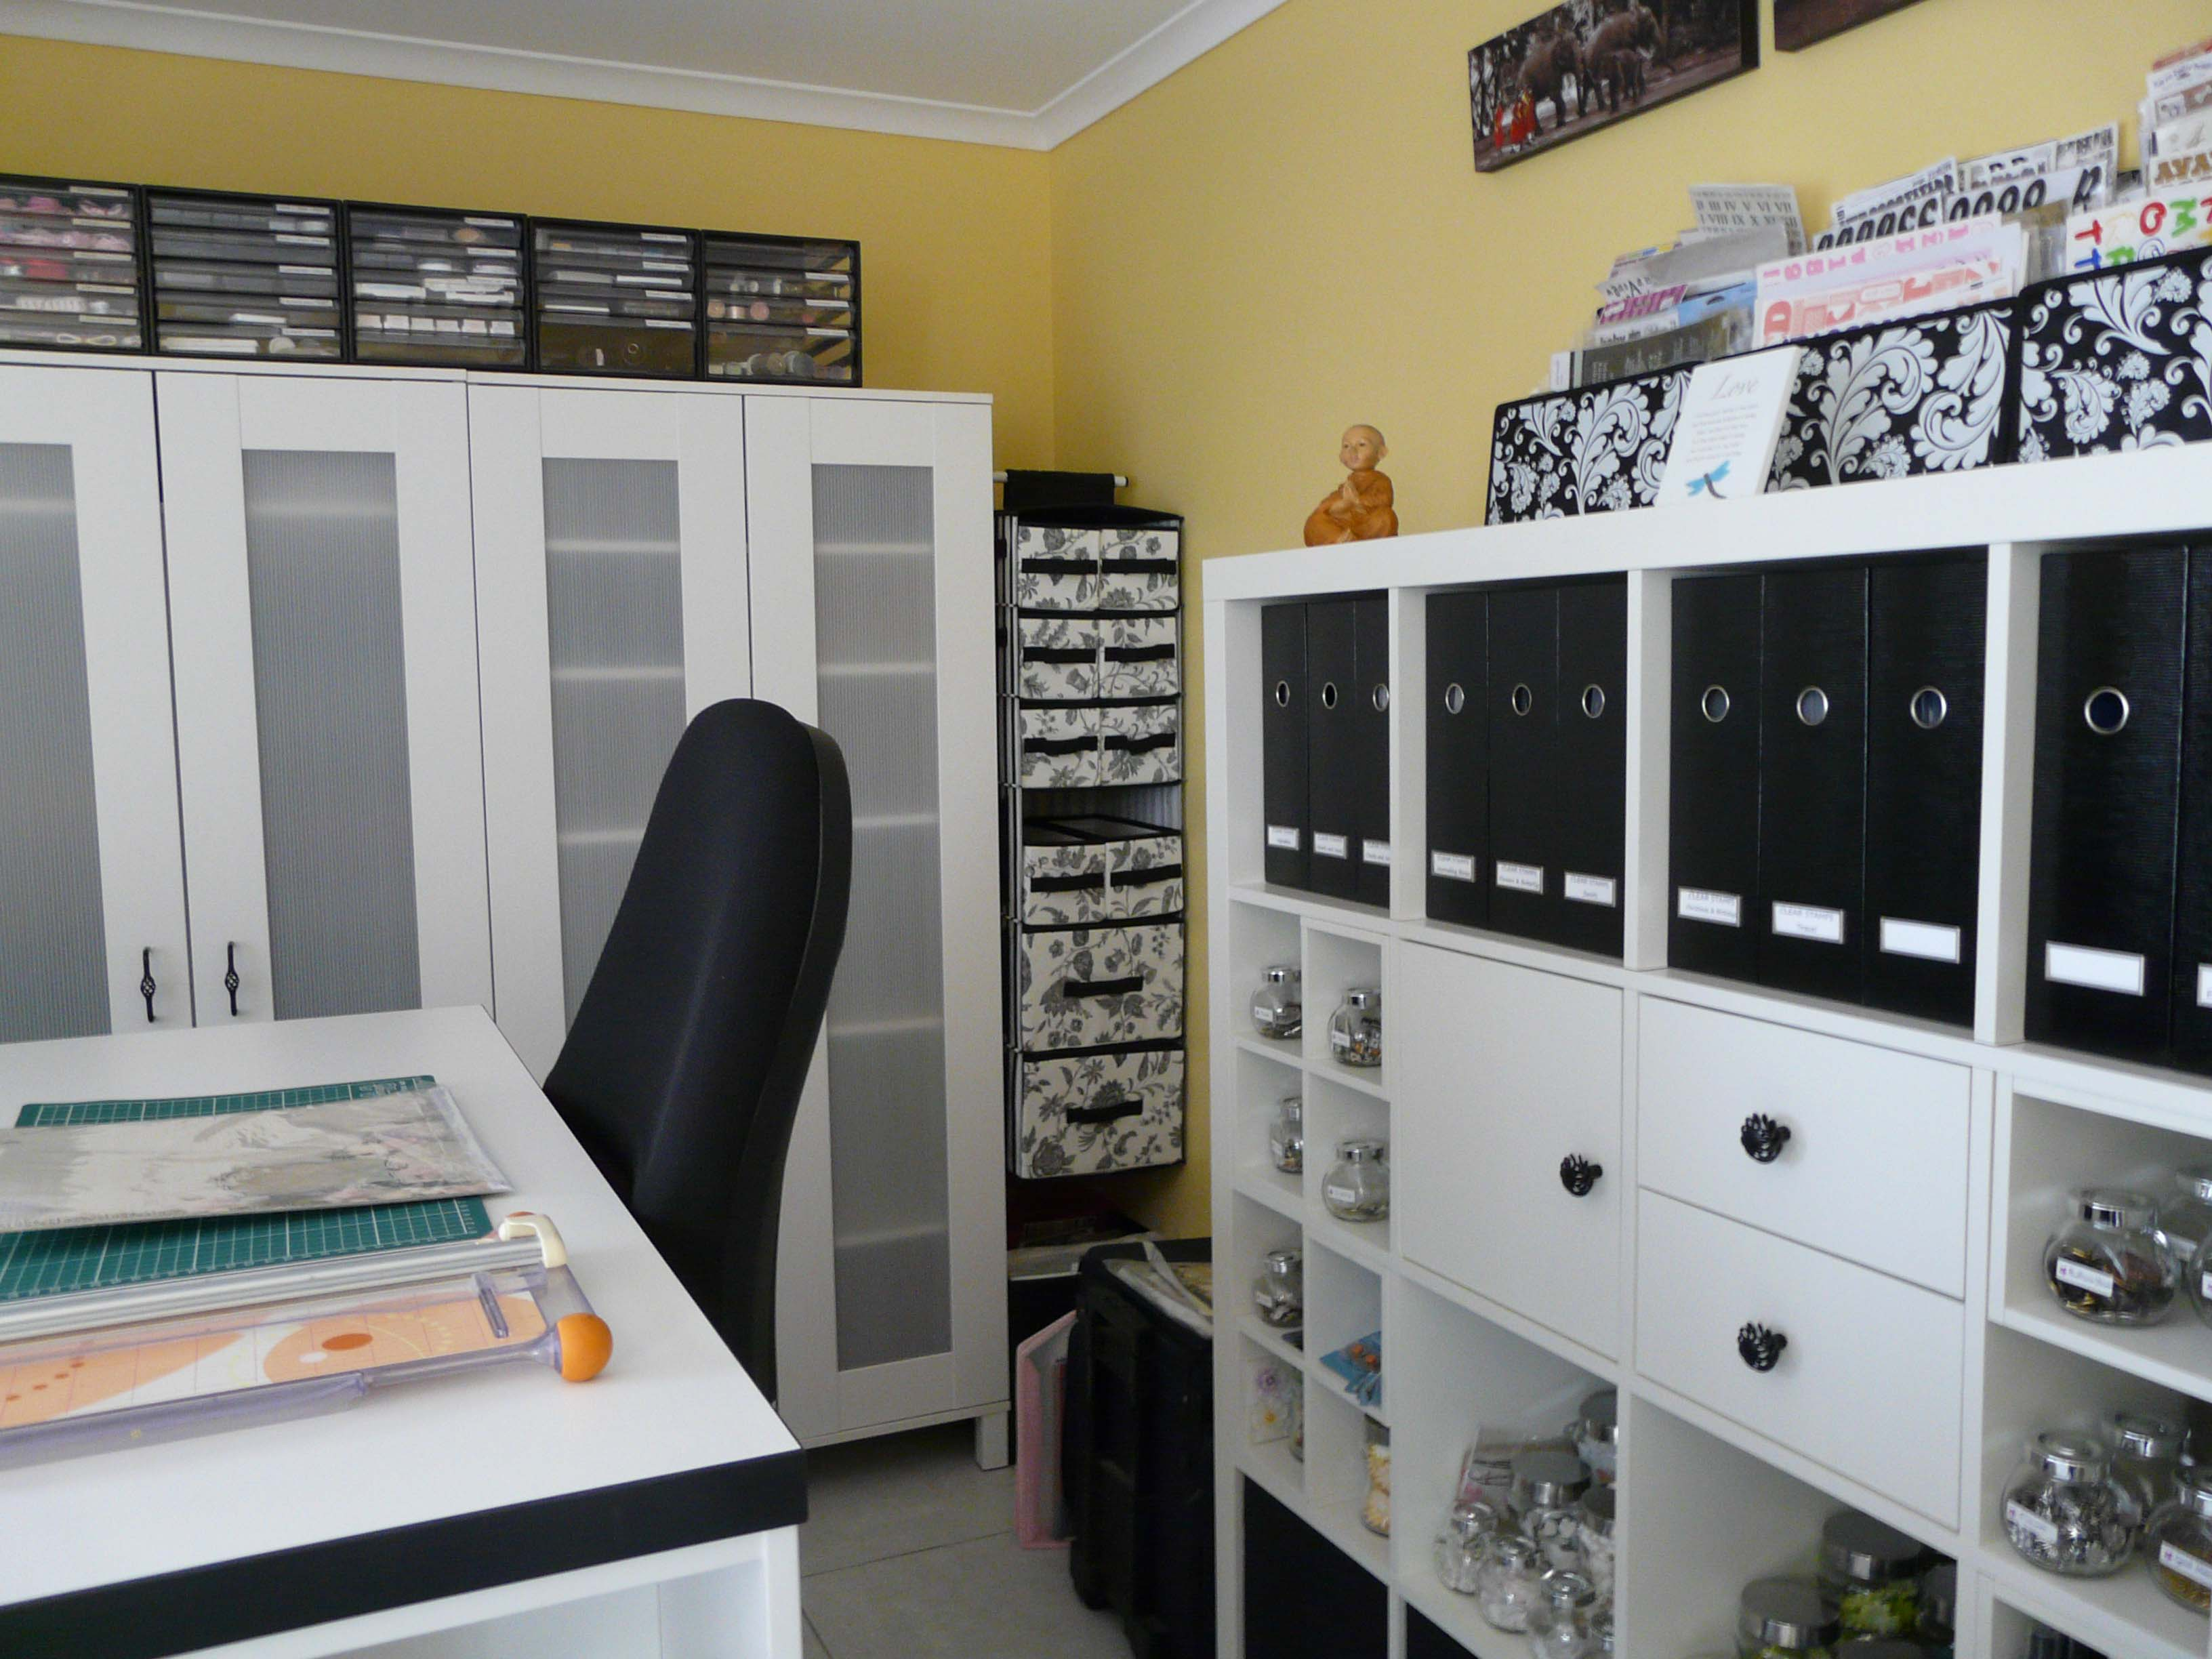 Storage For Craft Room: Scraproom: My Scrapbook Room